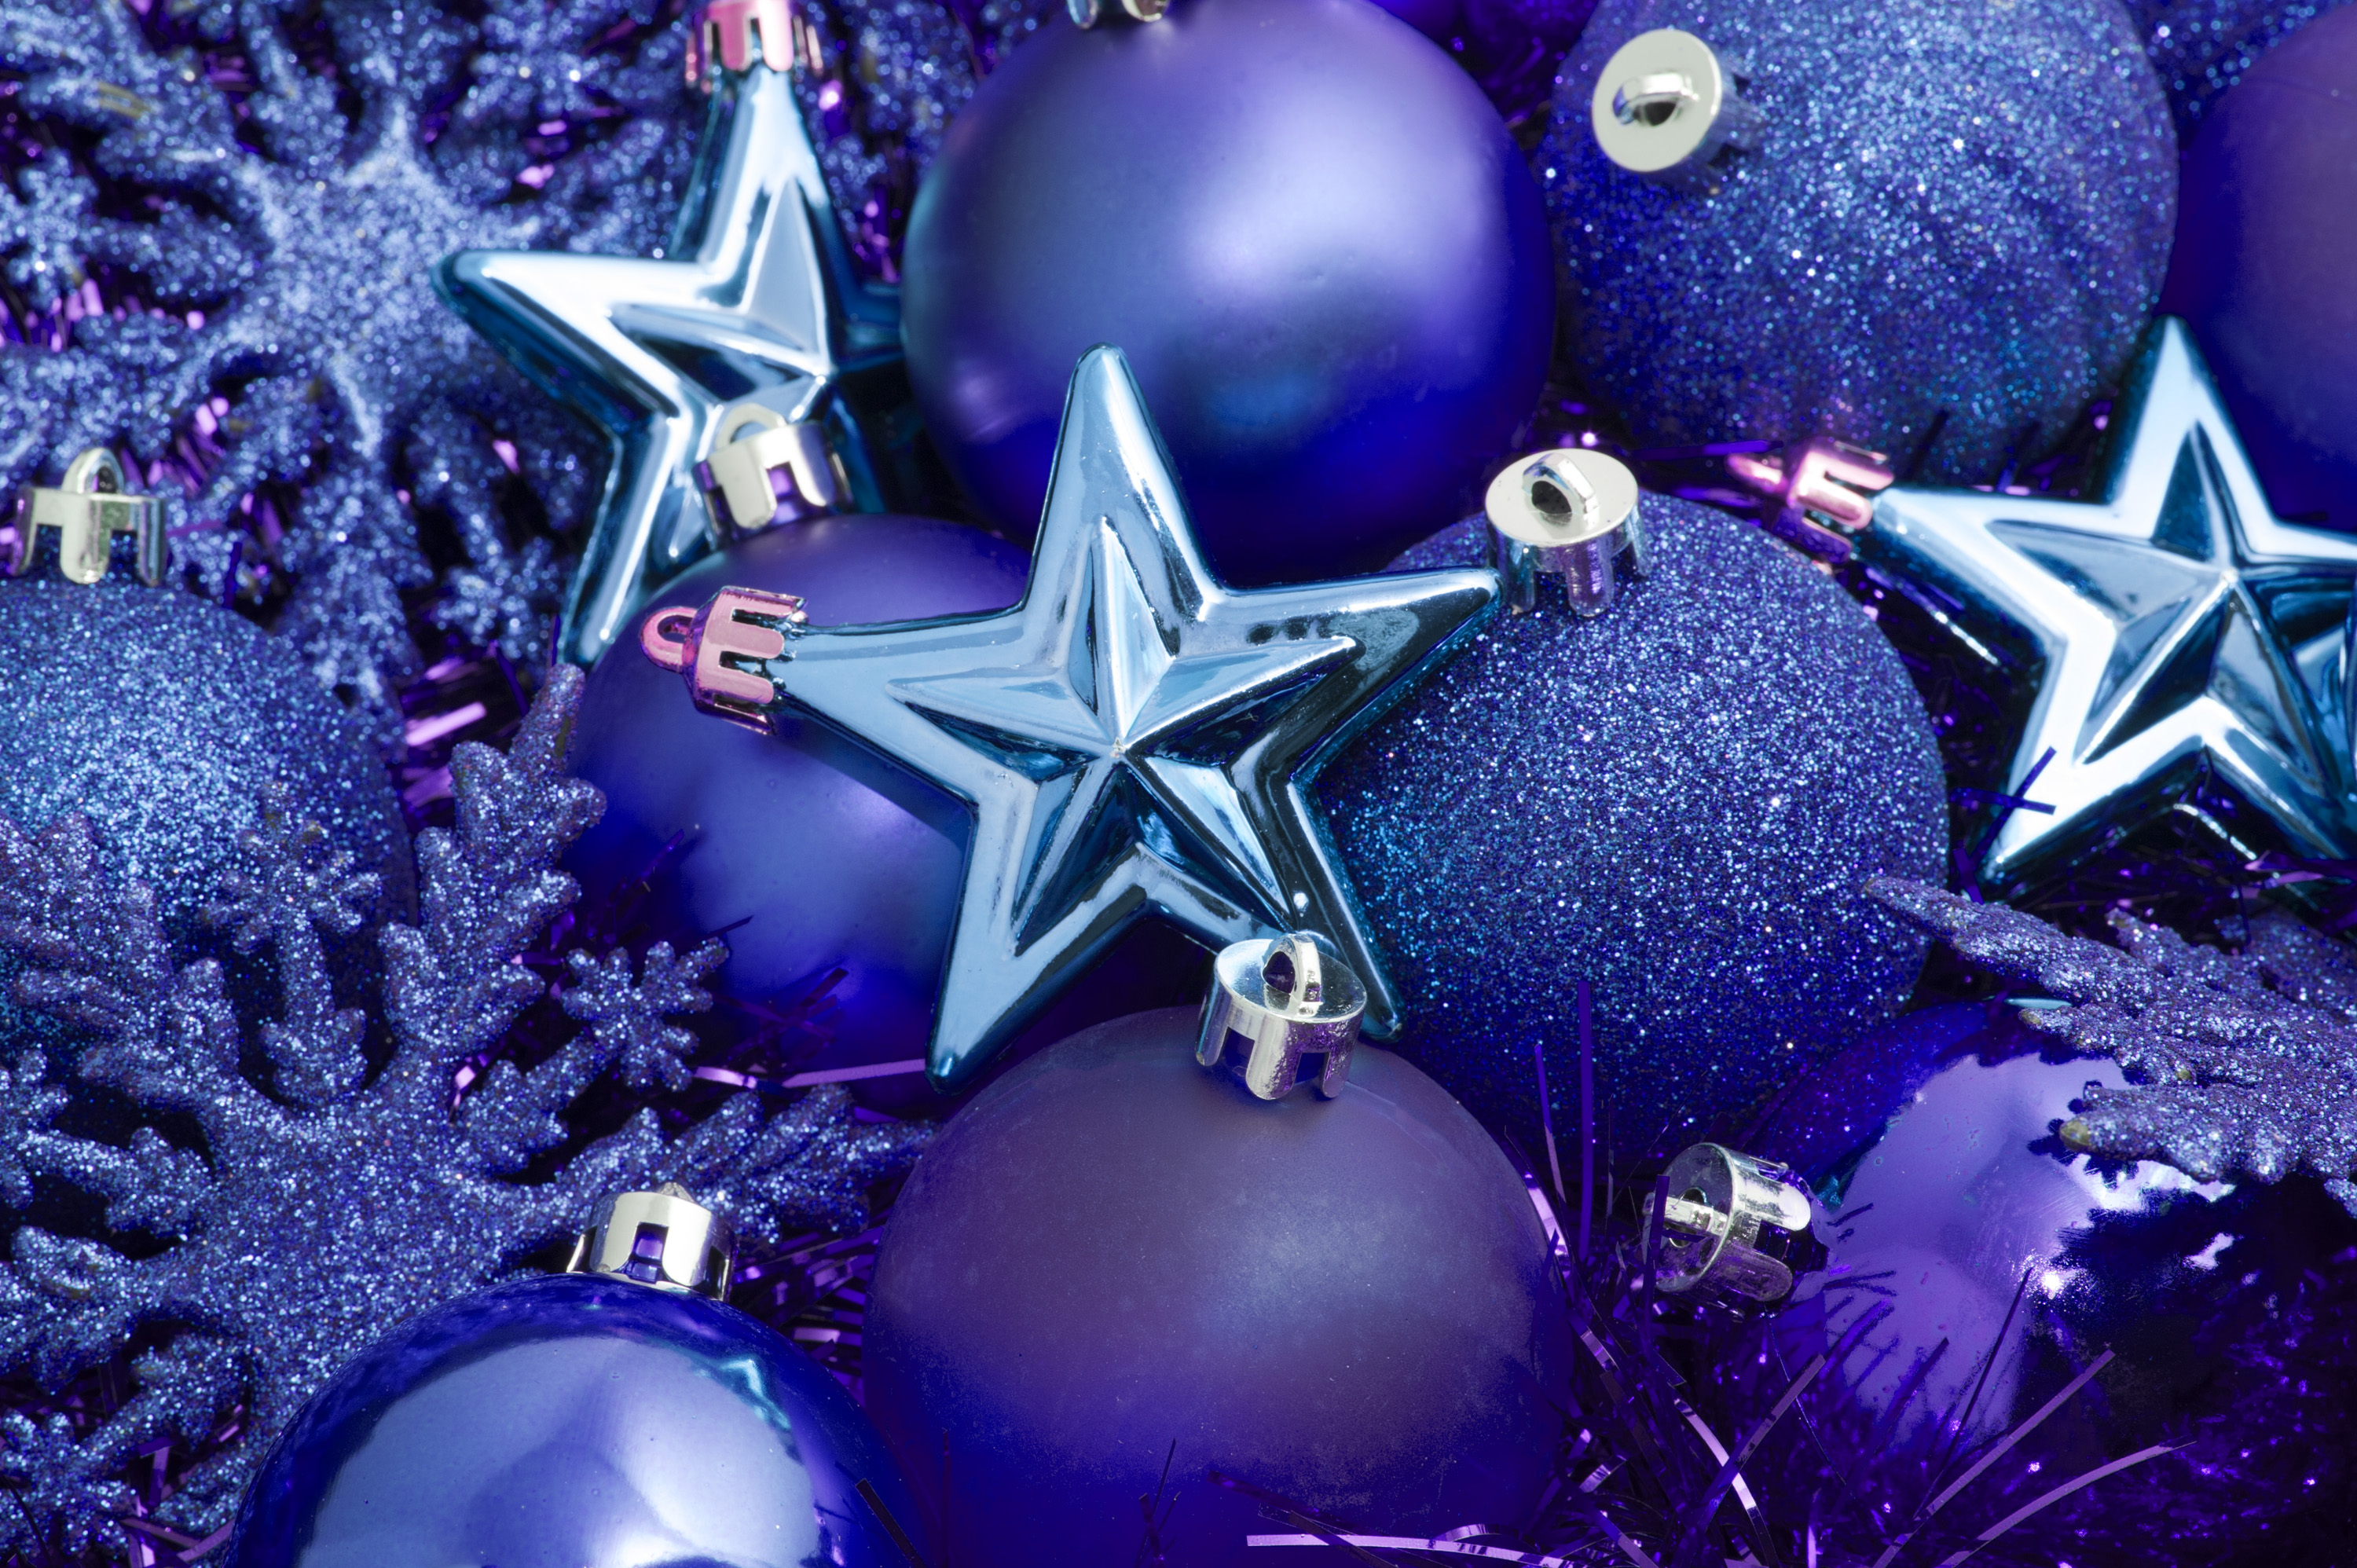 Amazing Blue Christmas Decorations 3000 x 1996 · 1928 kB · jpeg